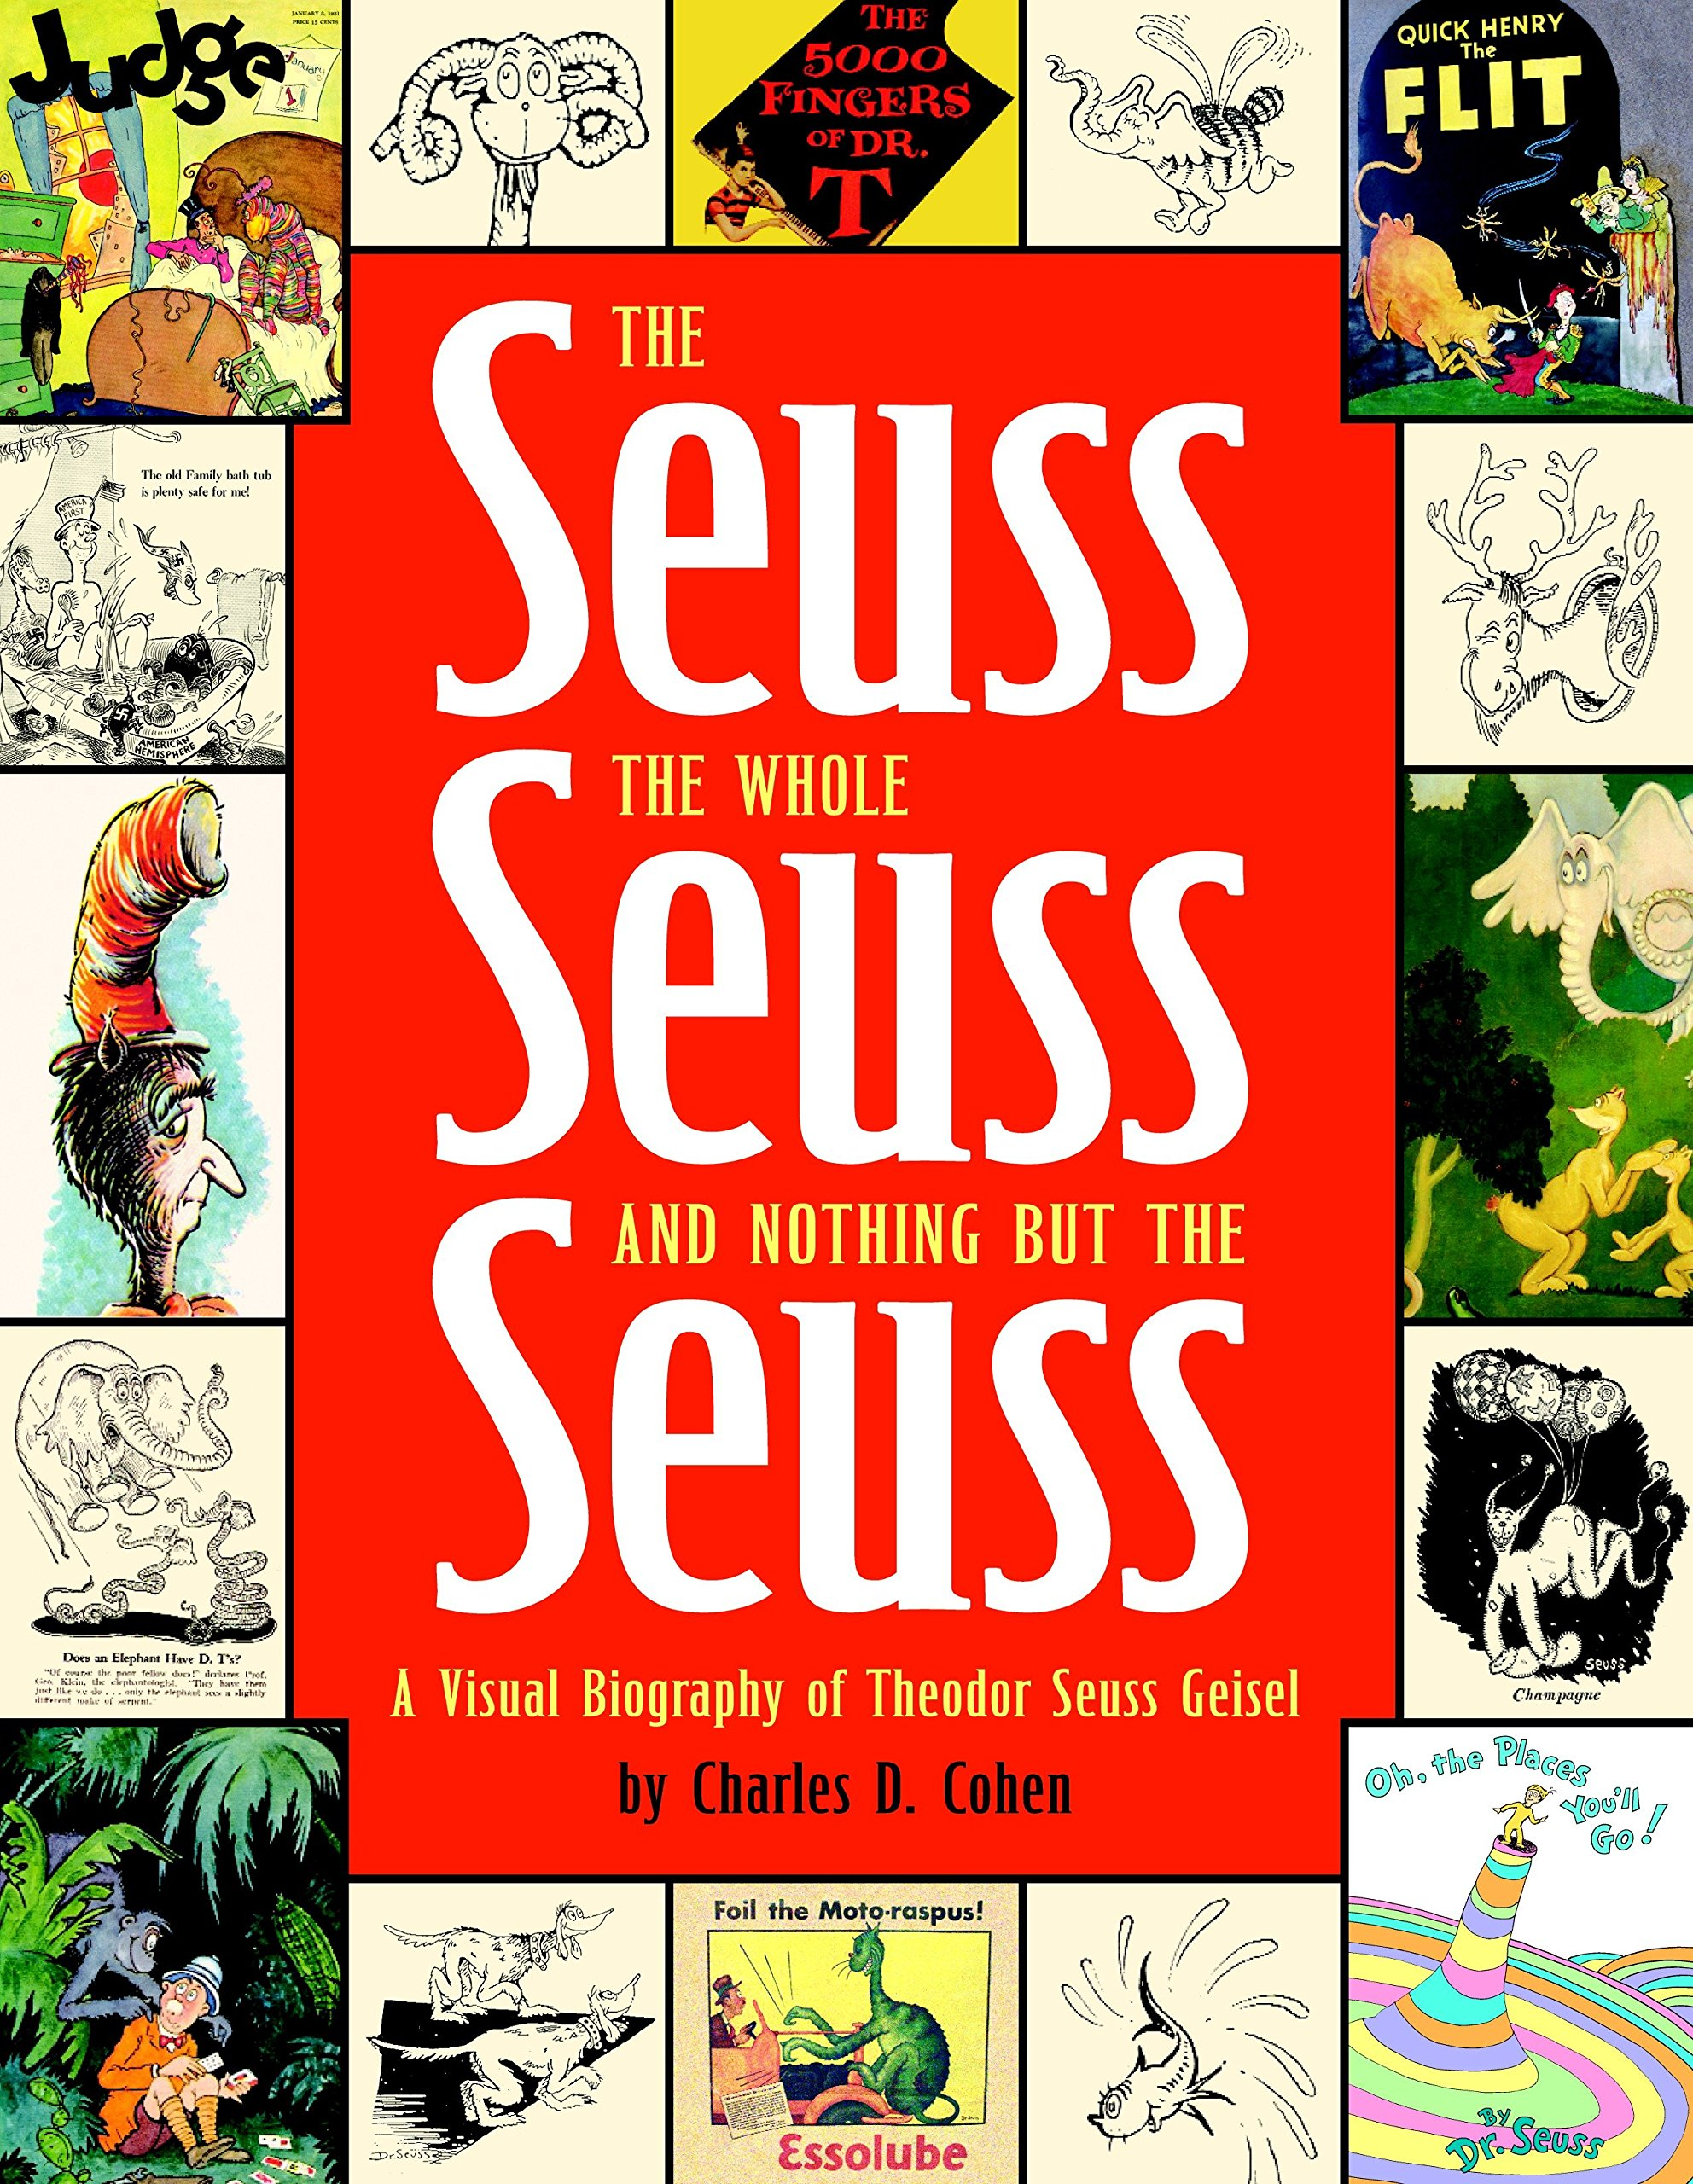 The Seuss, the Whole Seuss and Nothing But the Seuss: A Visual Biography of Theodor Seuss Geisel pdf epub